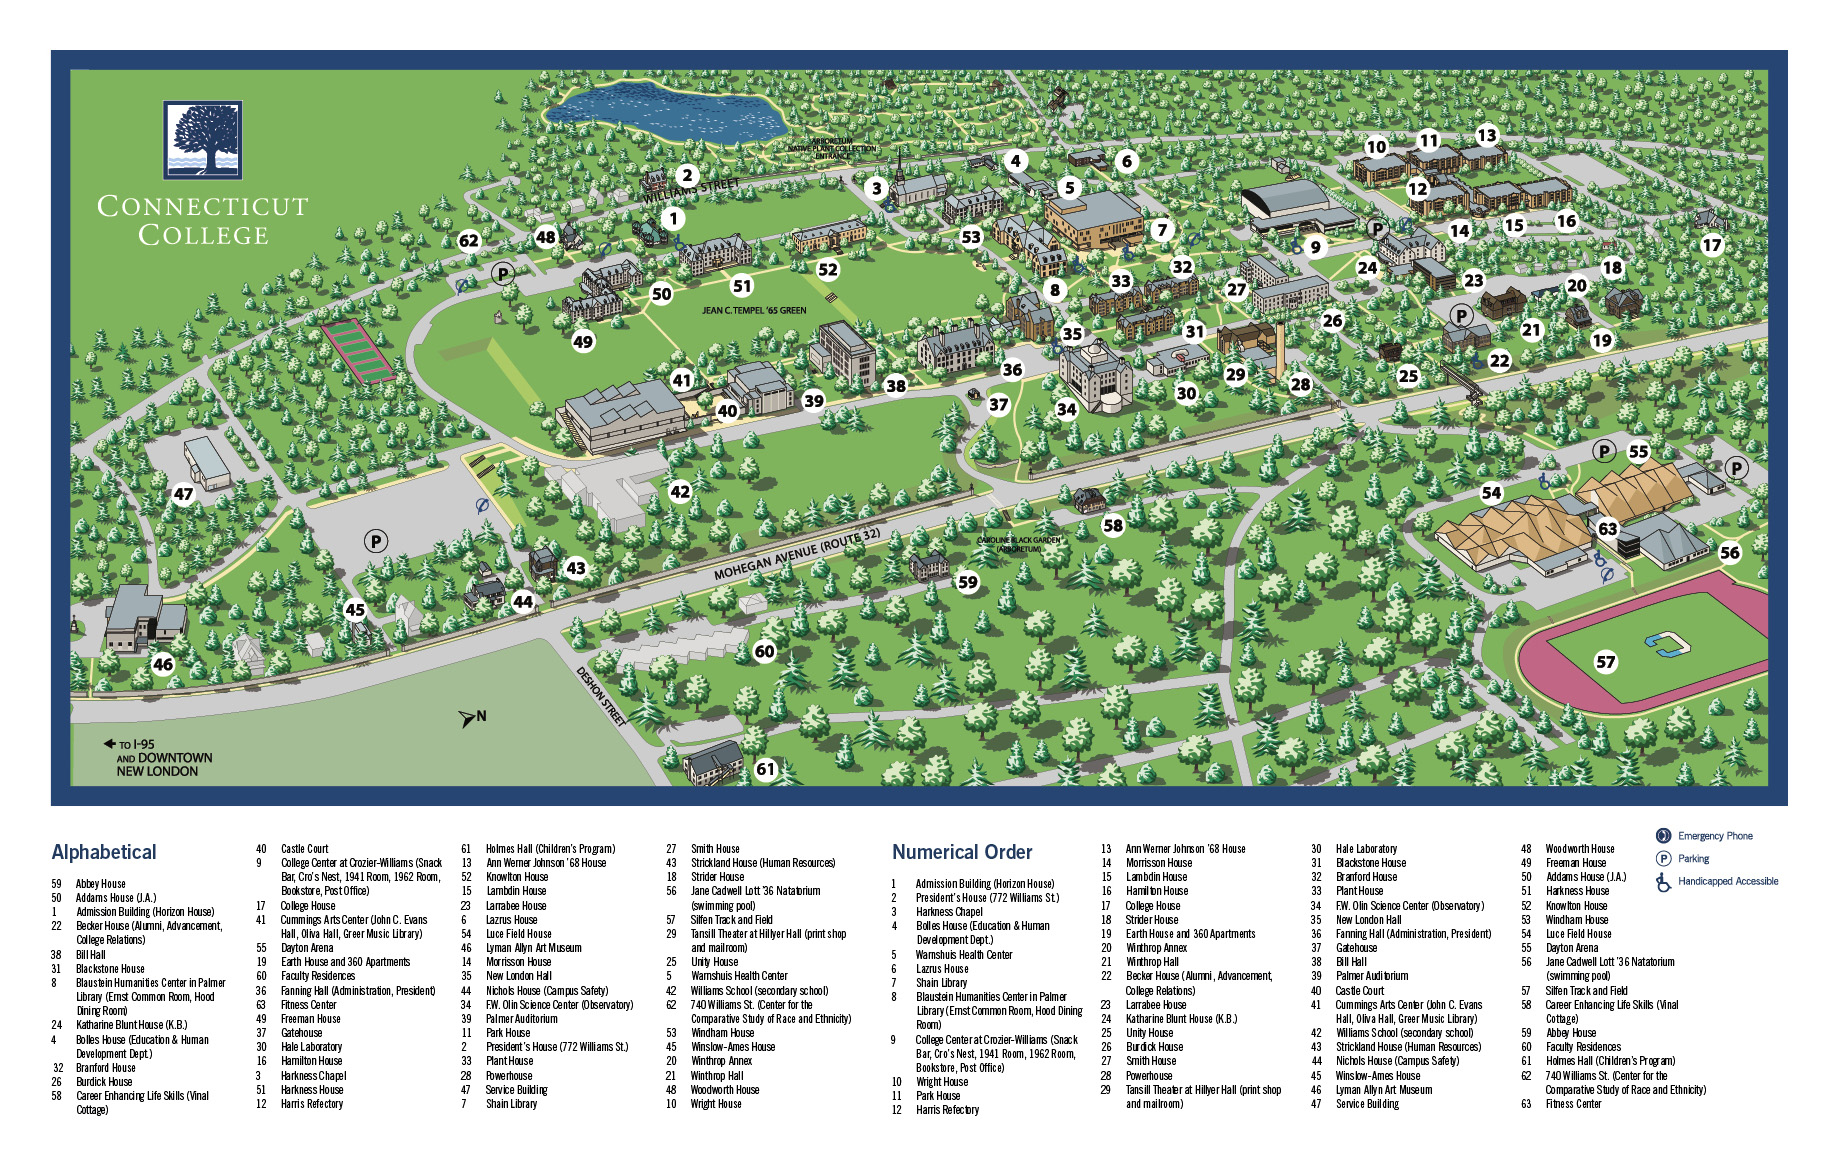 conn coll campus map Conn College Campus Map Map Vector conn coll campus map